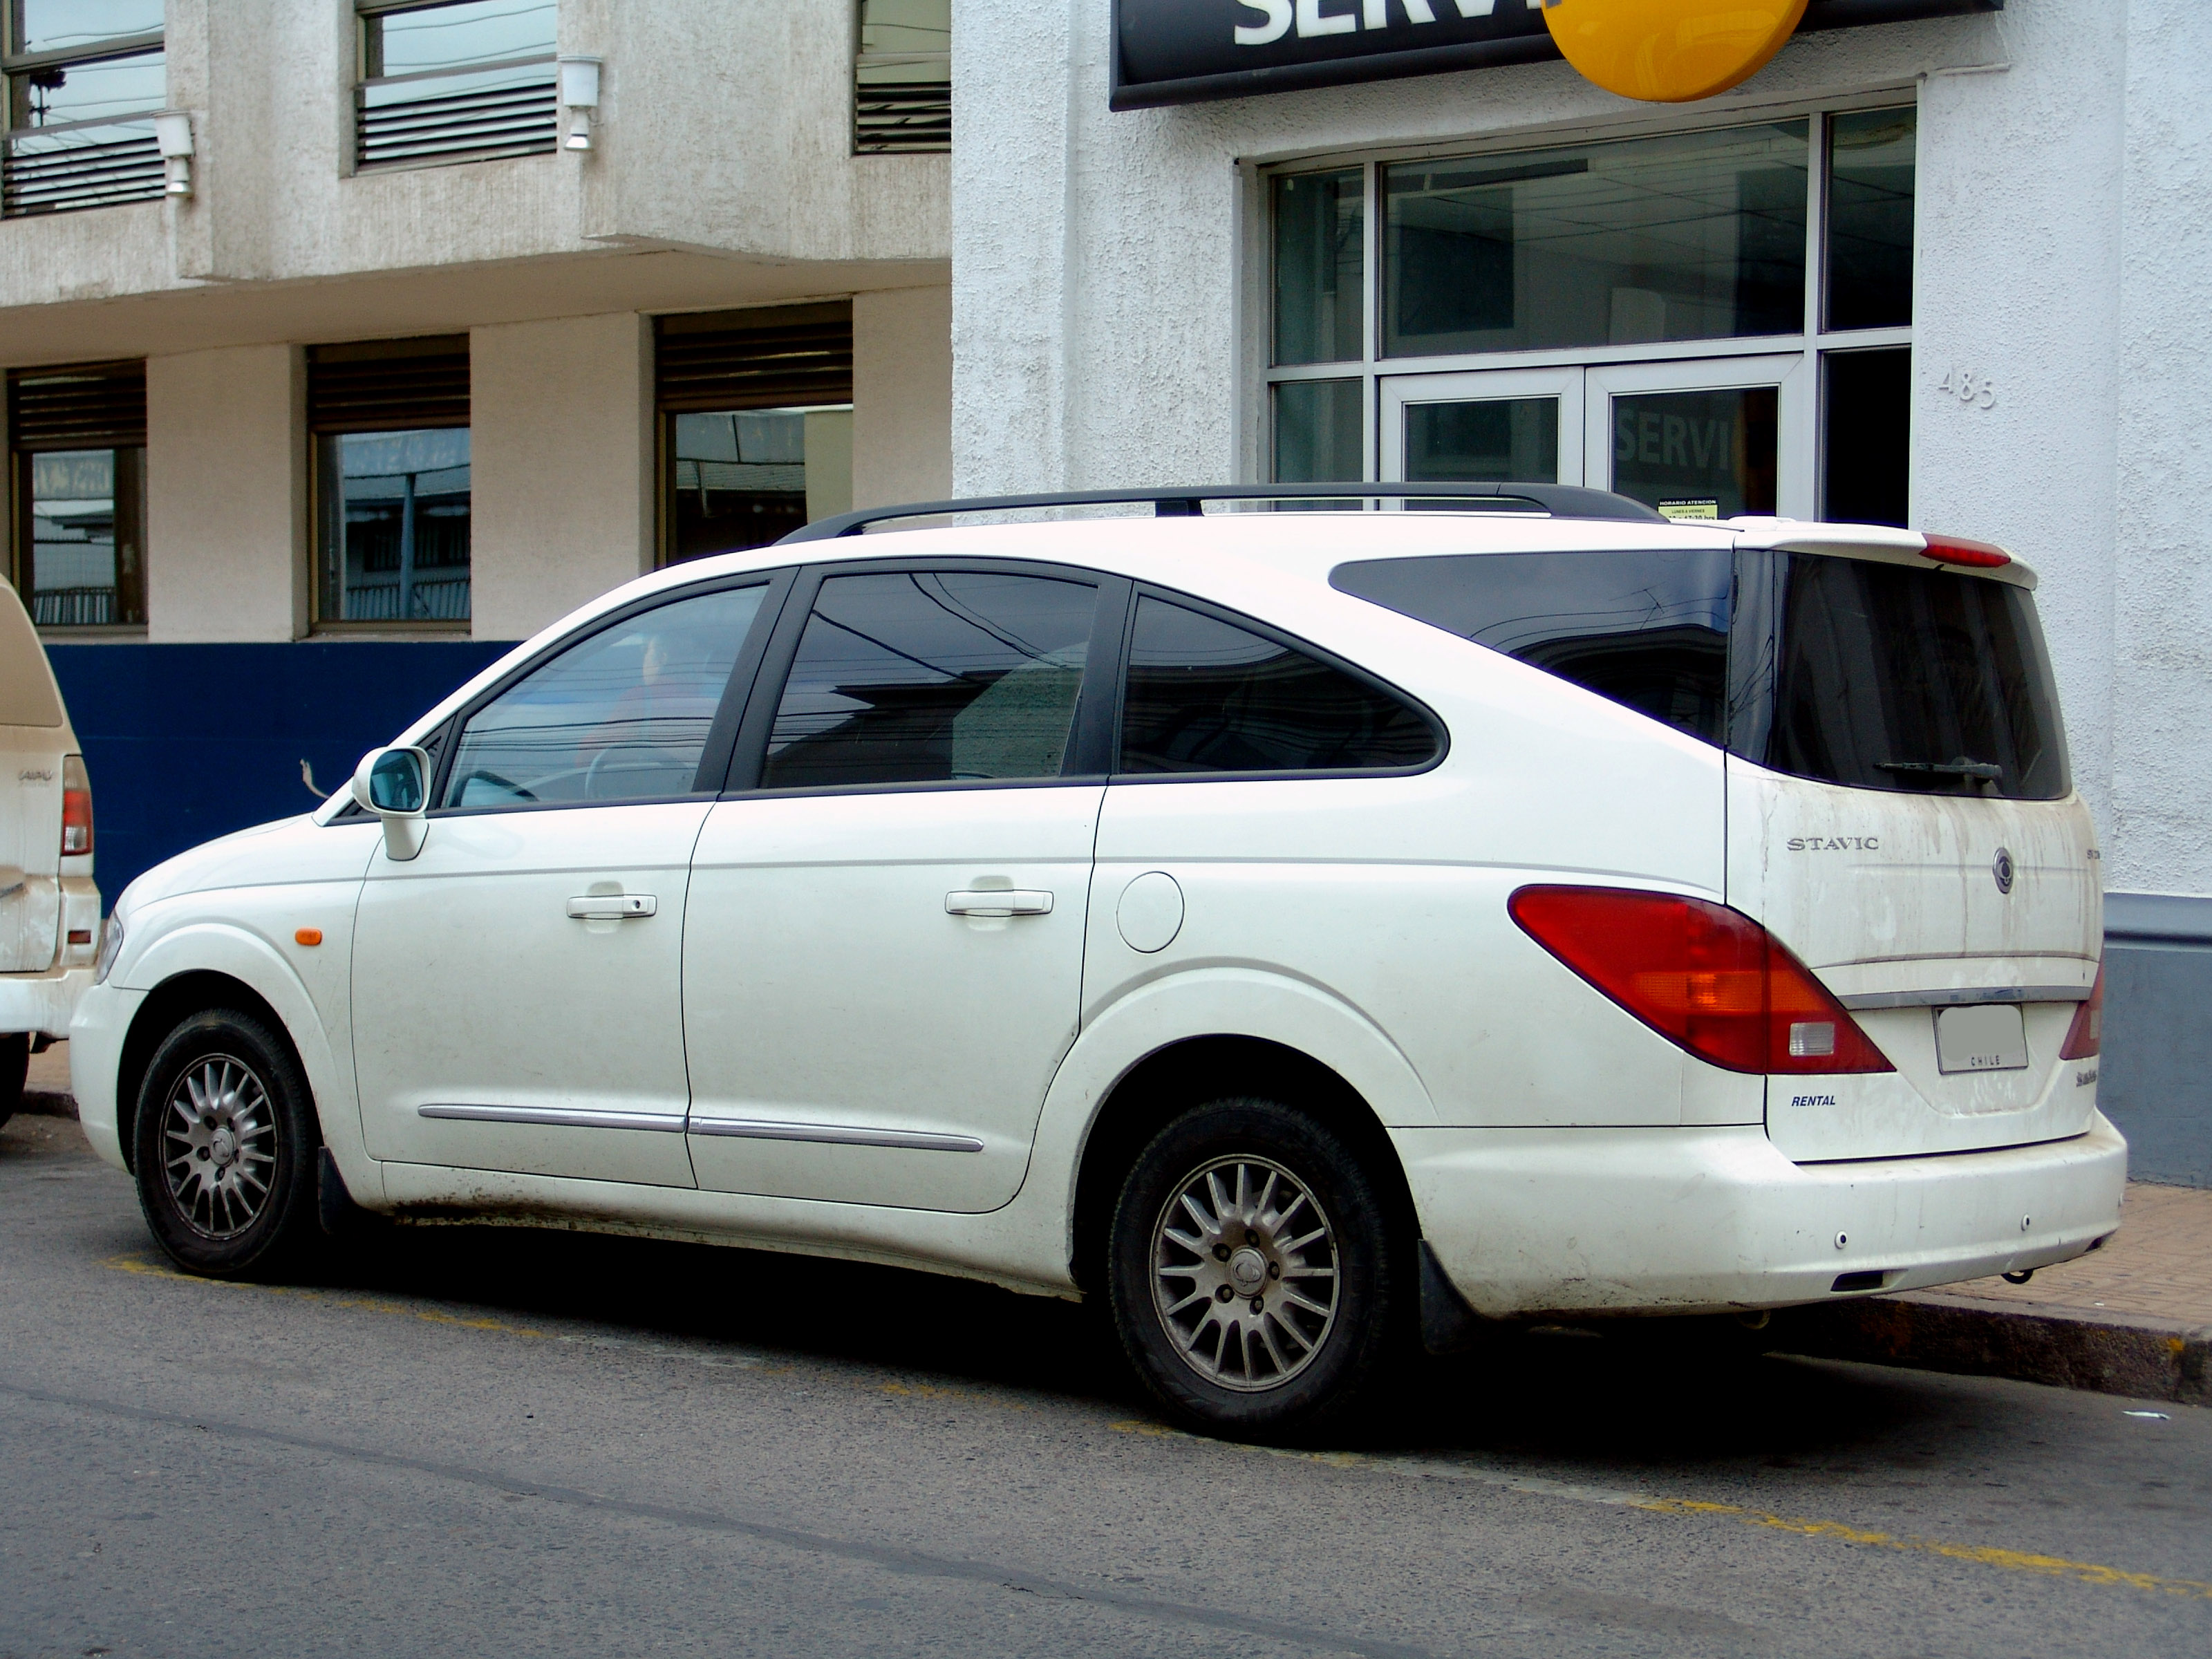 2008 Ssangyong Stavic #5